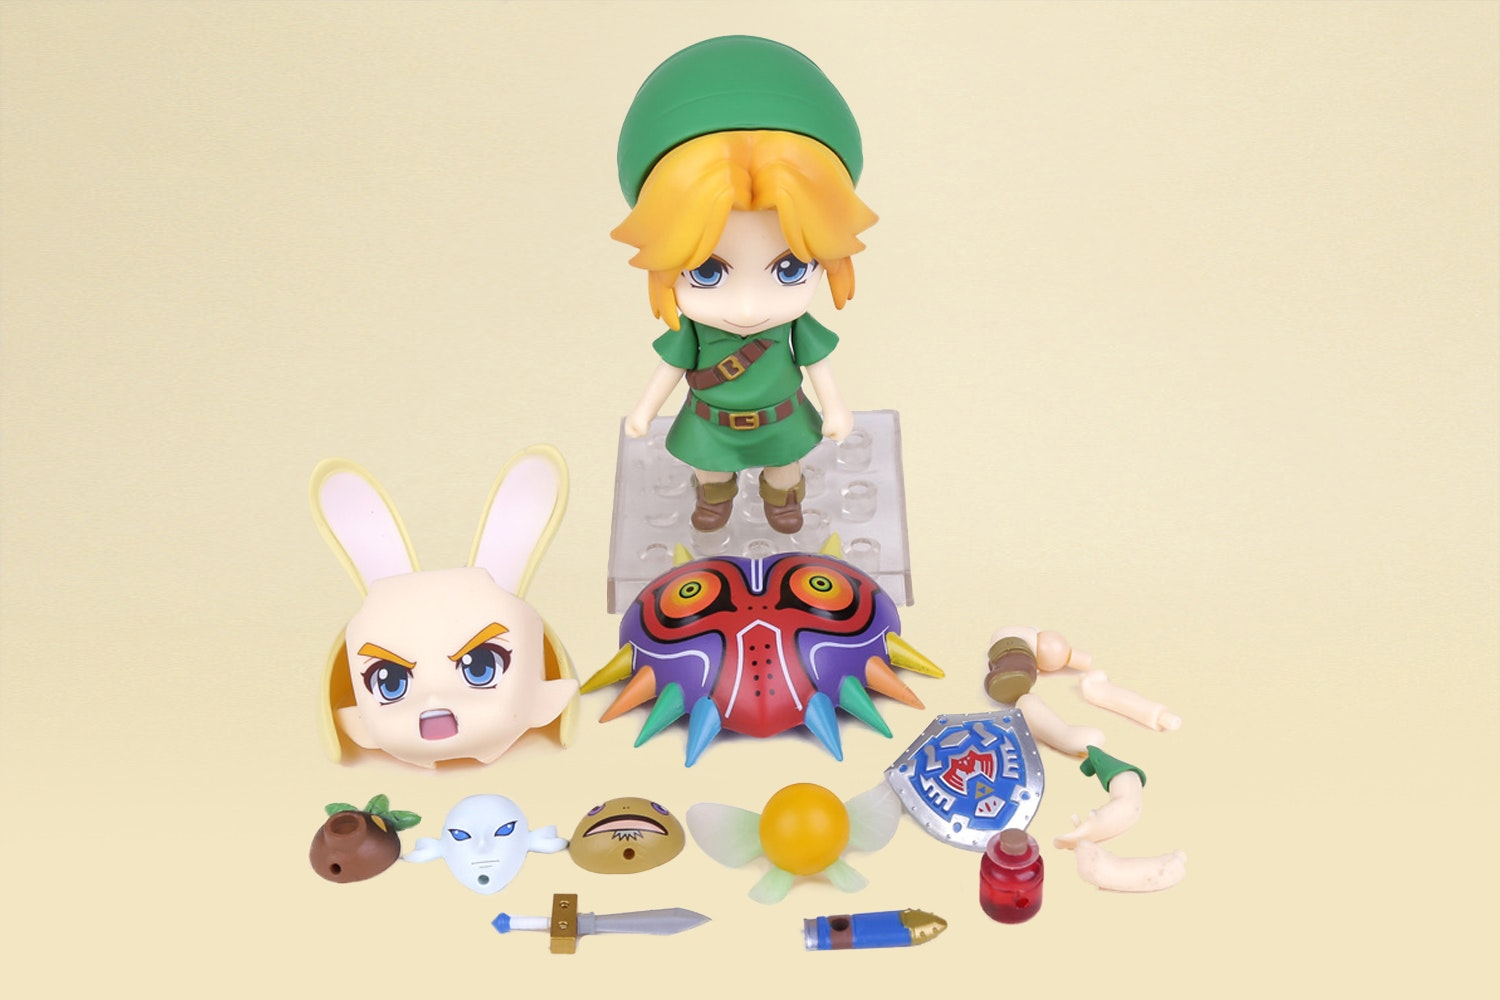 Nendoroid: The Legend of Zelda, Link Majora's Mask